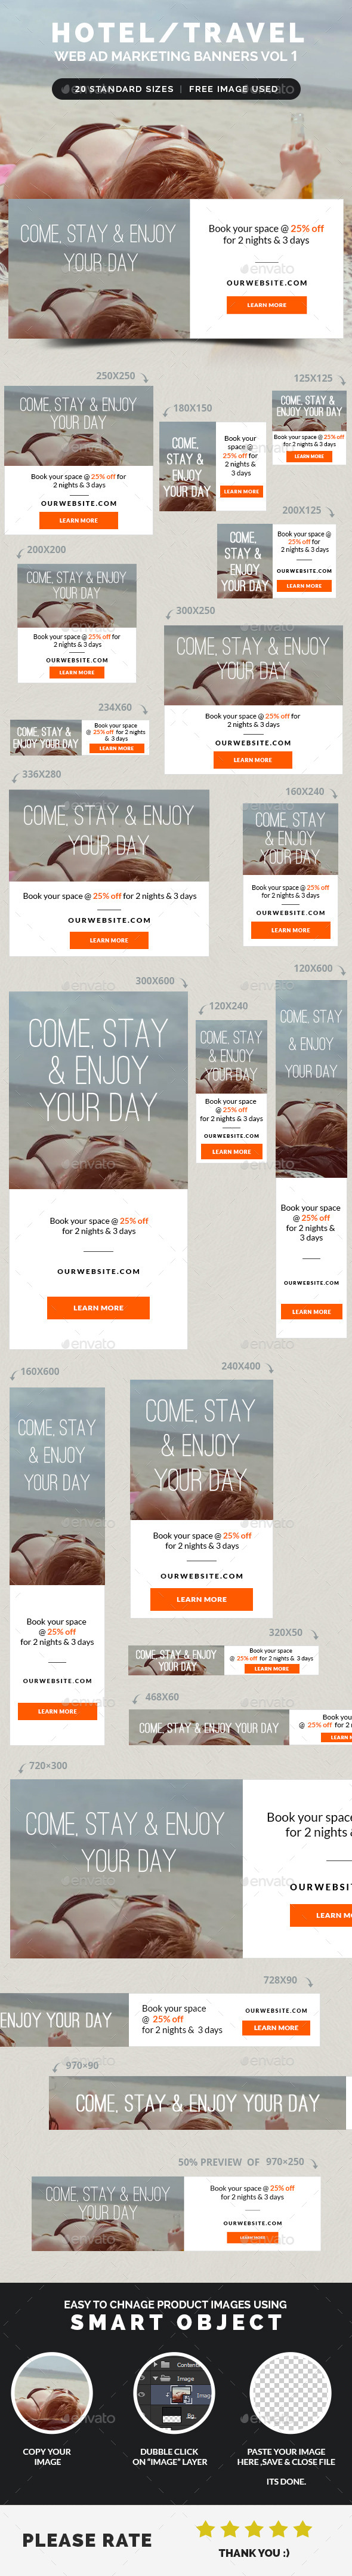 Hotel Travel Web Ad Marketing Banners Vol 1